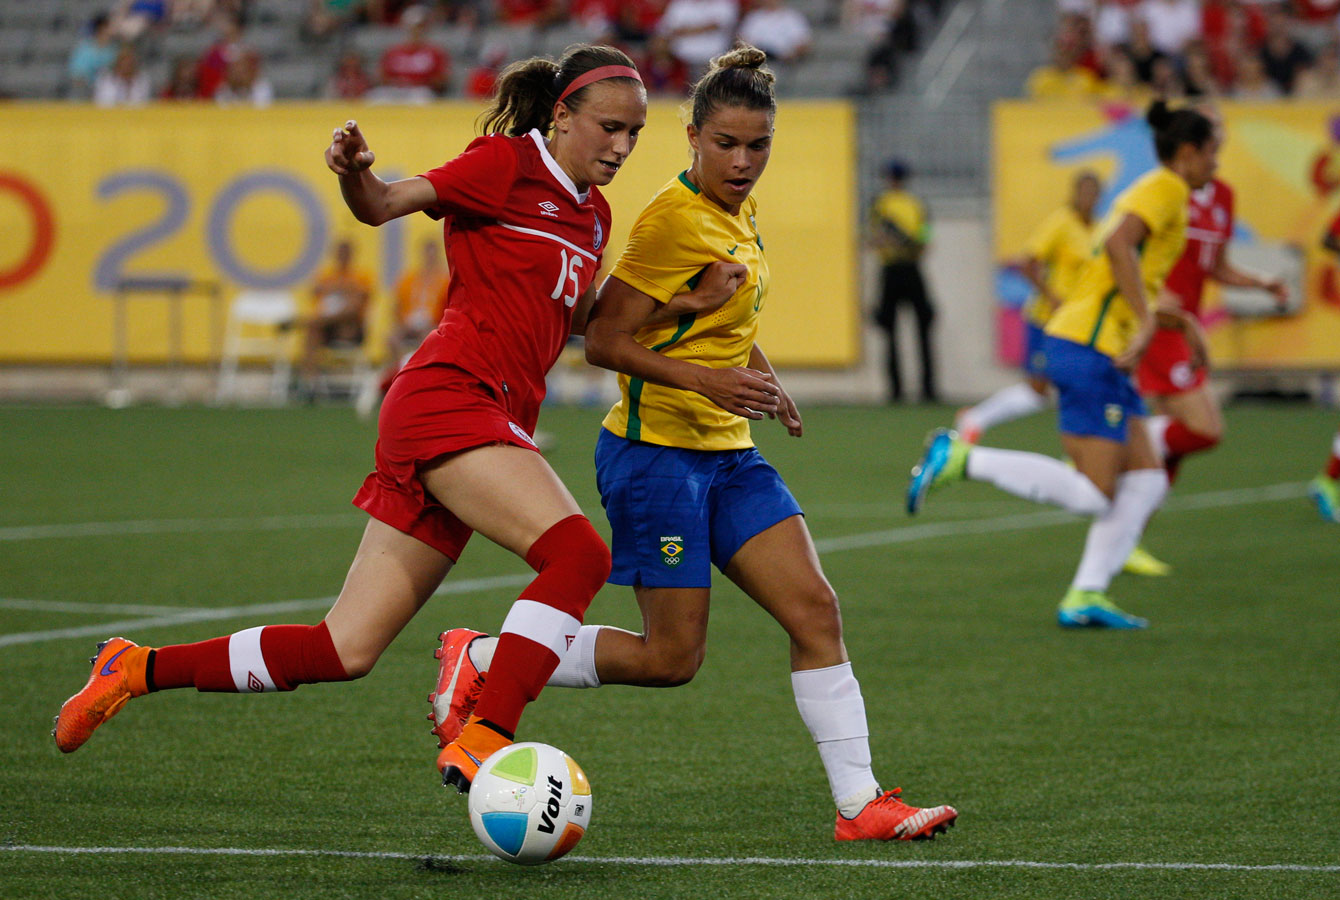 Team Canada's women's soccer team in action during a preliminary match against Brazil at TO2015